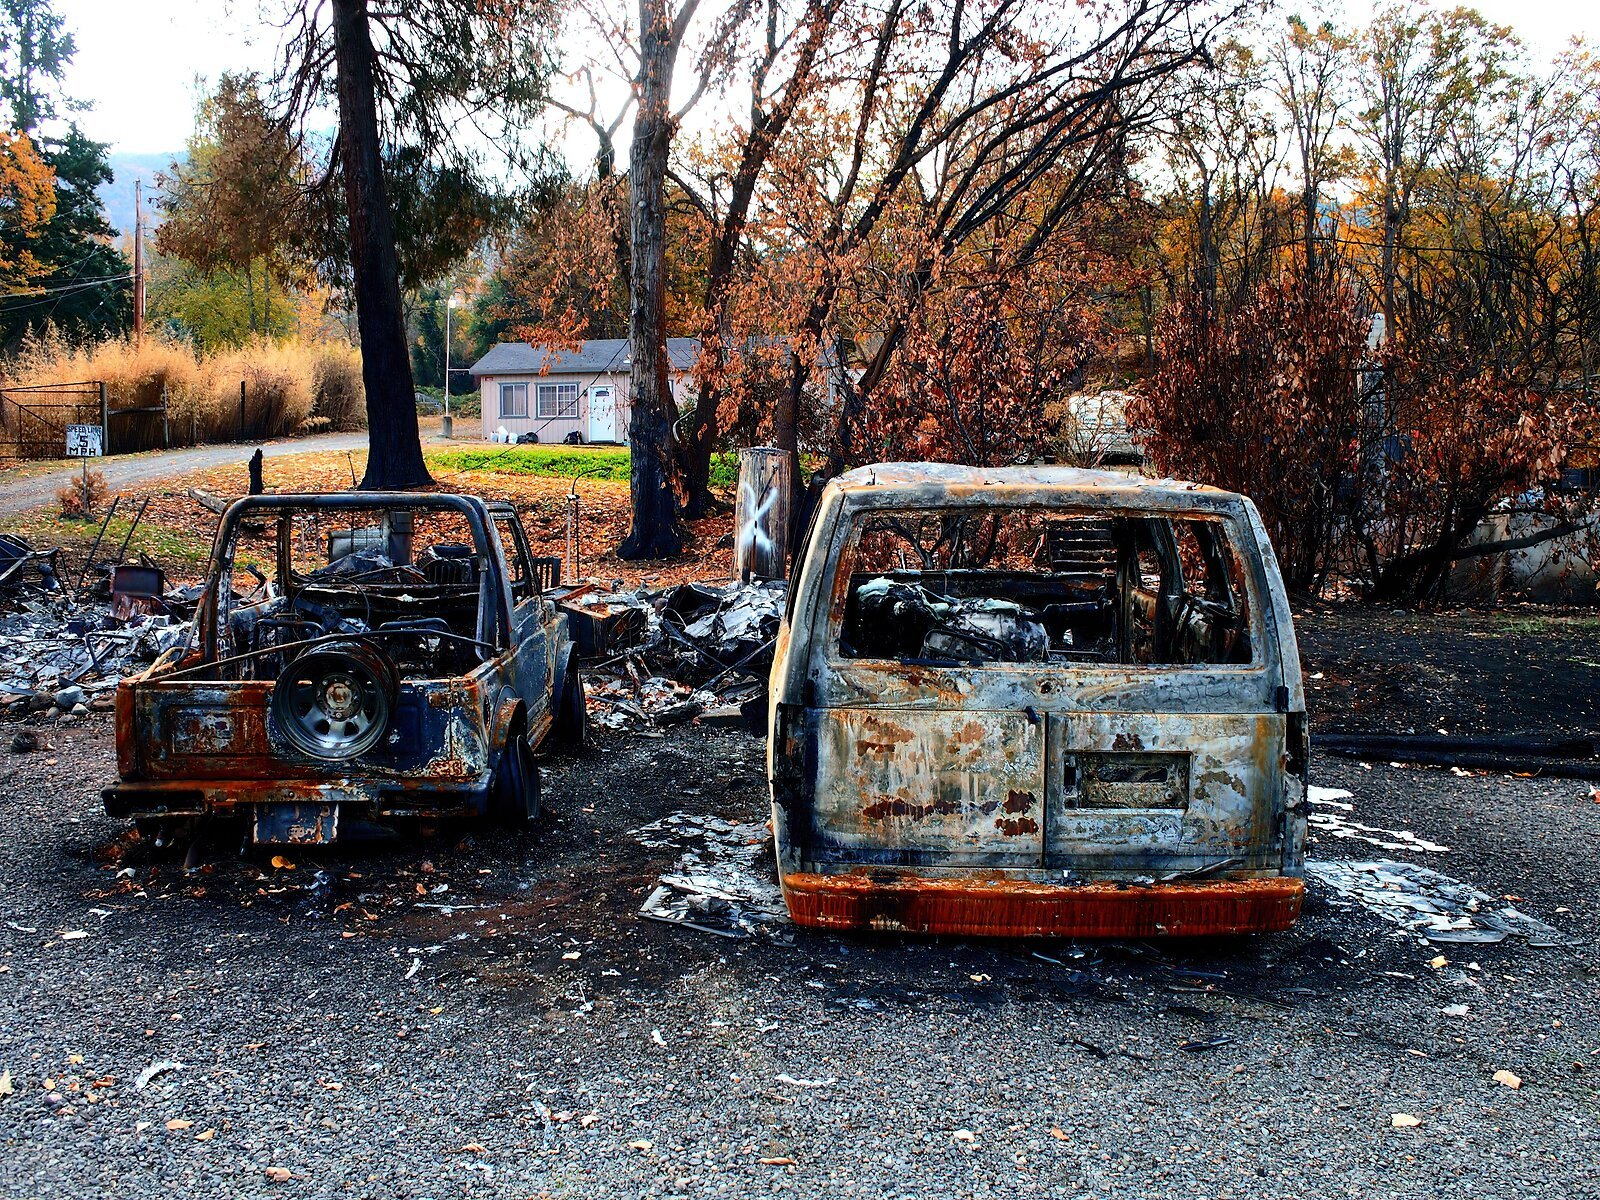 EP3_Nov10_Burned_vehicles#1.jpg